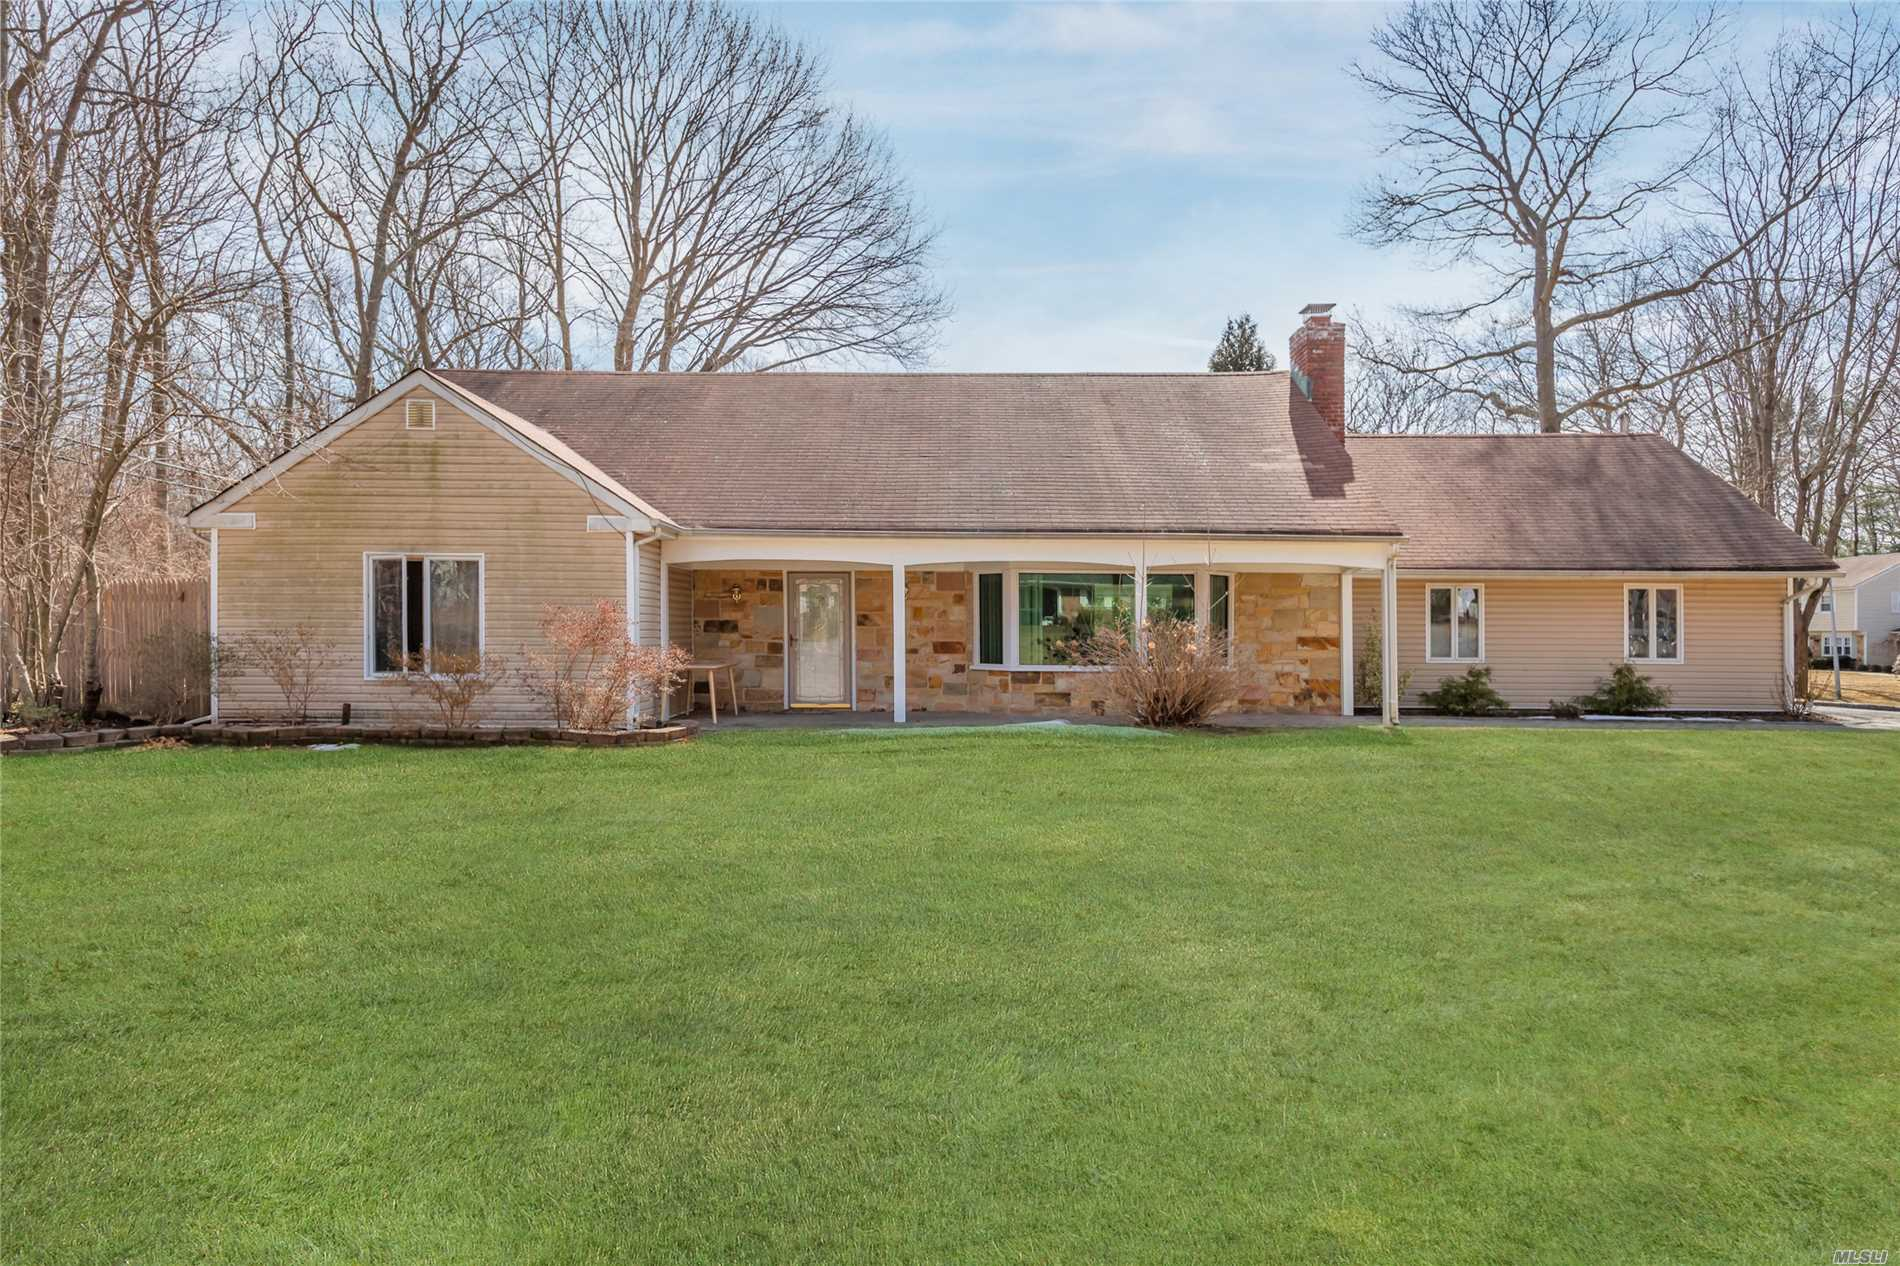 Best Price In Town For This Large Home. Large Farm Ranch In S Section, Very Private Lot. Home Has Many Updates, Cac, Andersen Windows & New W/W Carpet. Potential Mother/Daughter Setup With Proper Permit. Near Stony Brook University, Hospitals, Museums, Beaches & Transportation. 3 Village School. Must See.